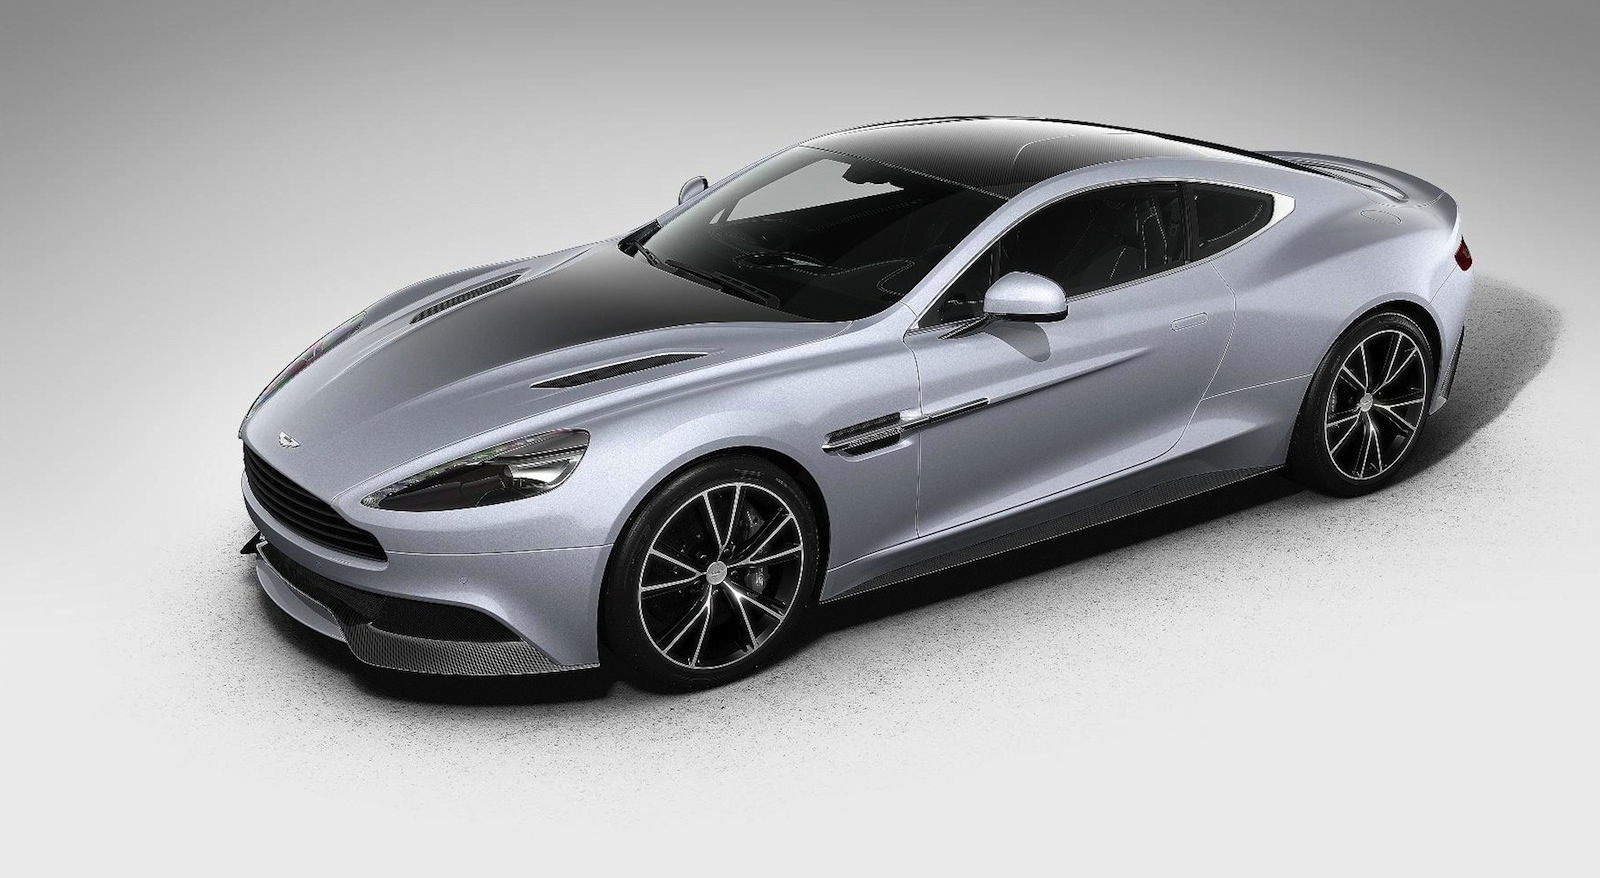 aston martin turns 100 today, celebrates with centenary editions